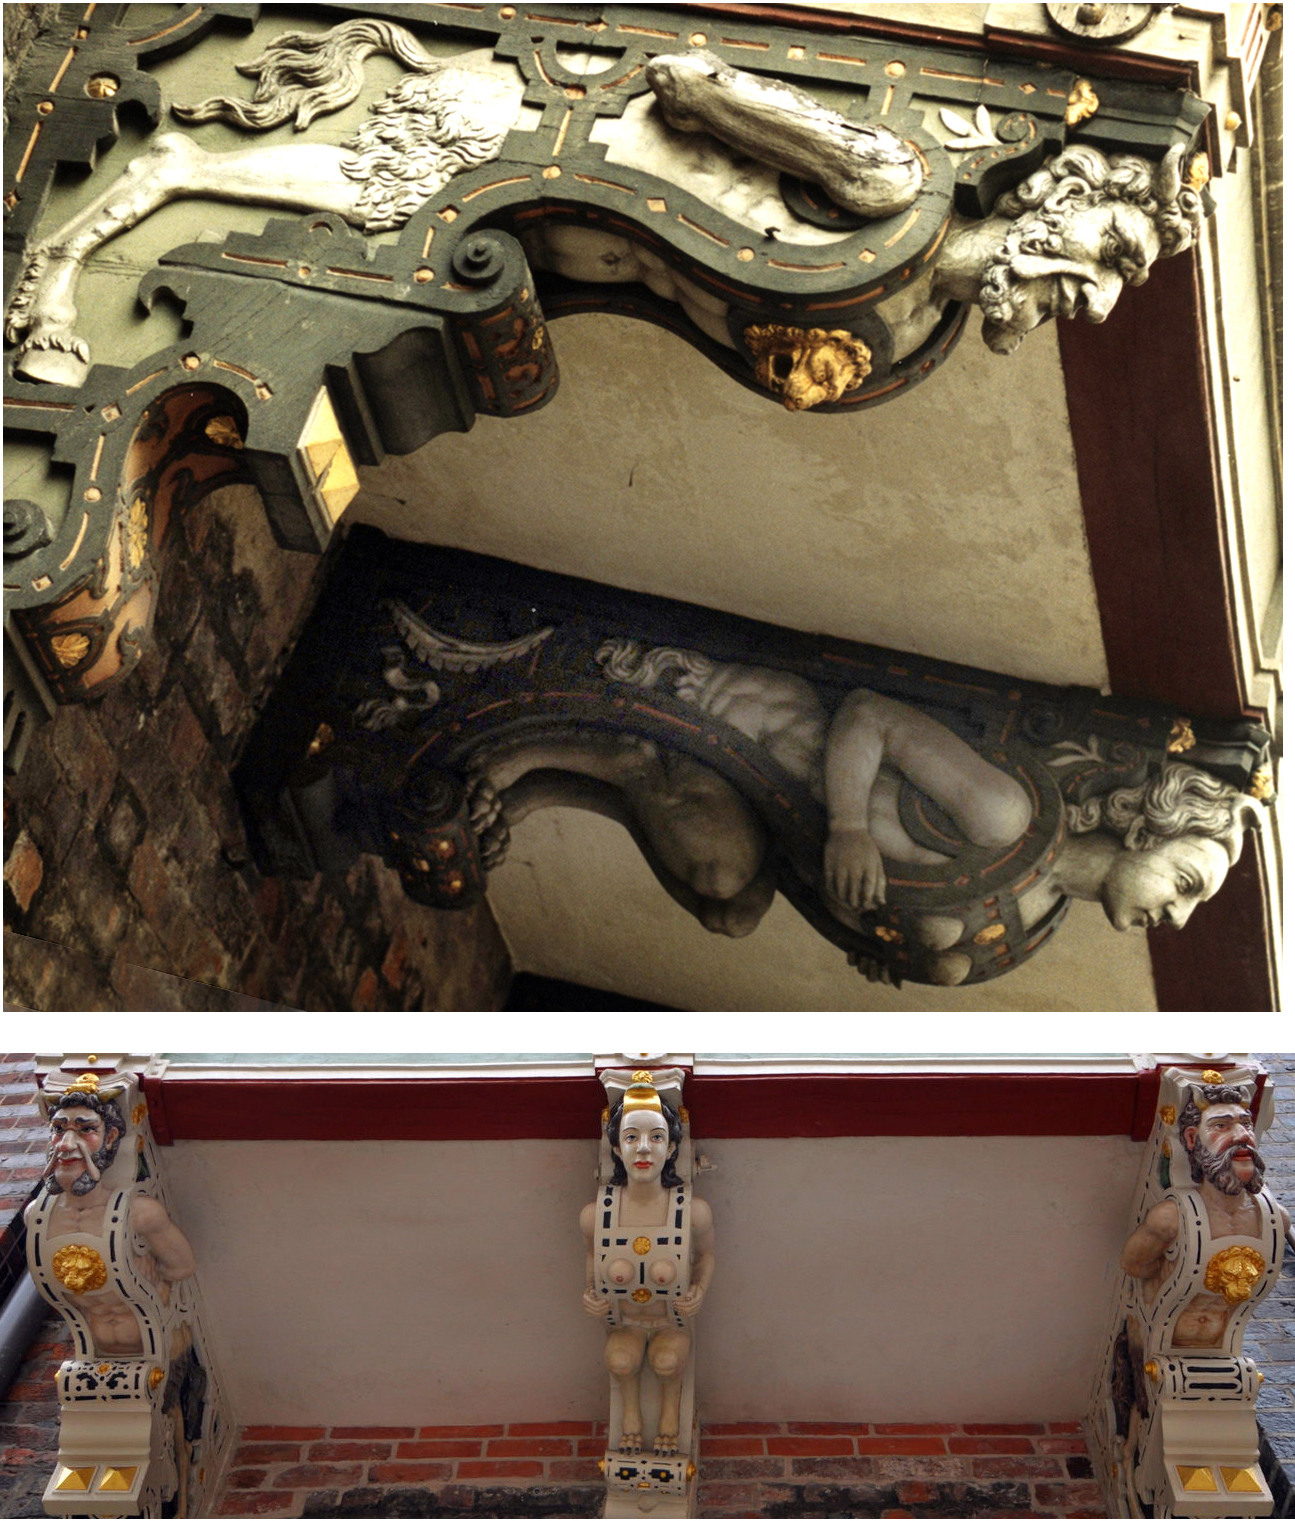 Two views (unrestored and restored) of the balcony volutes (top photo by groenling)